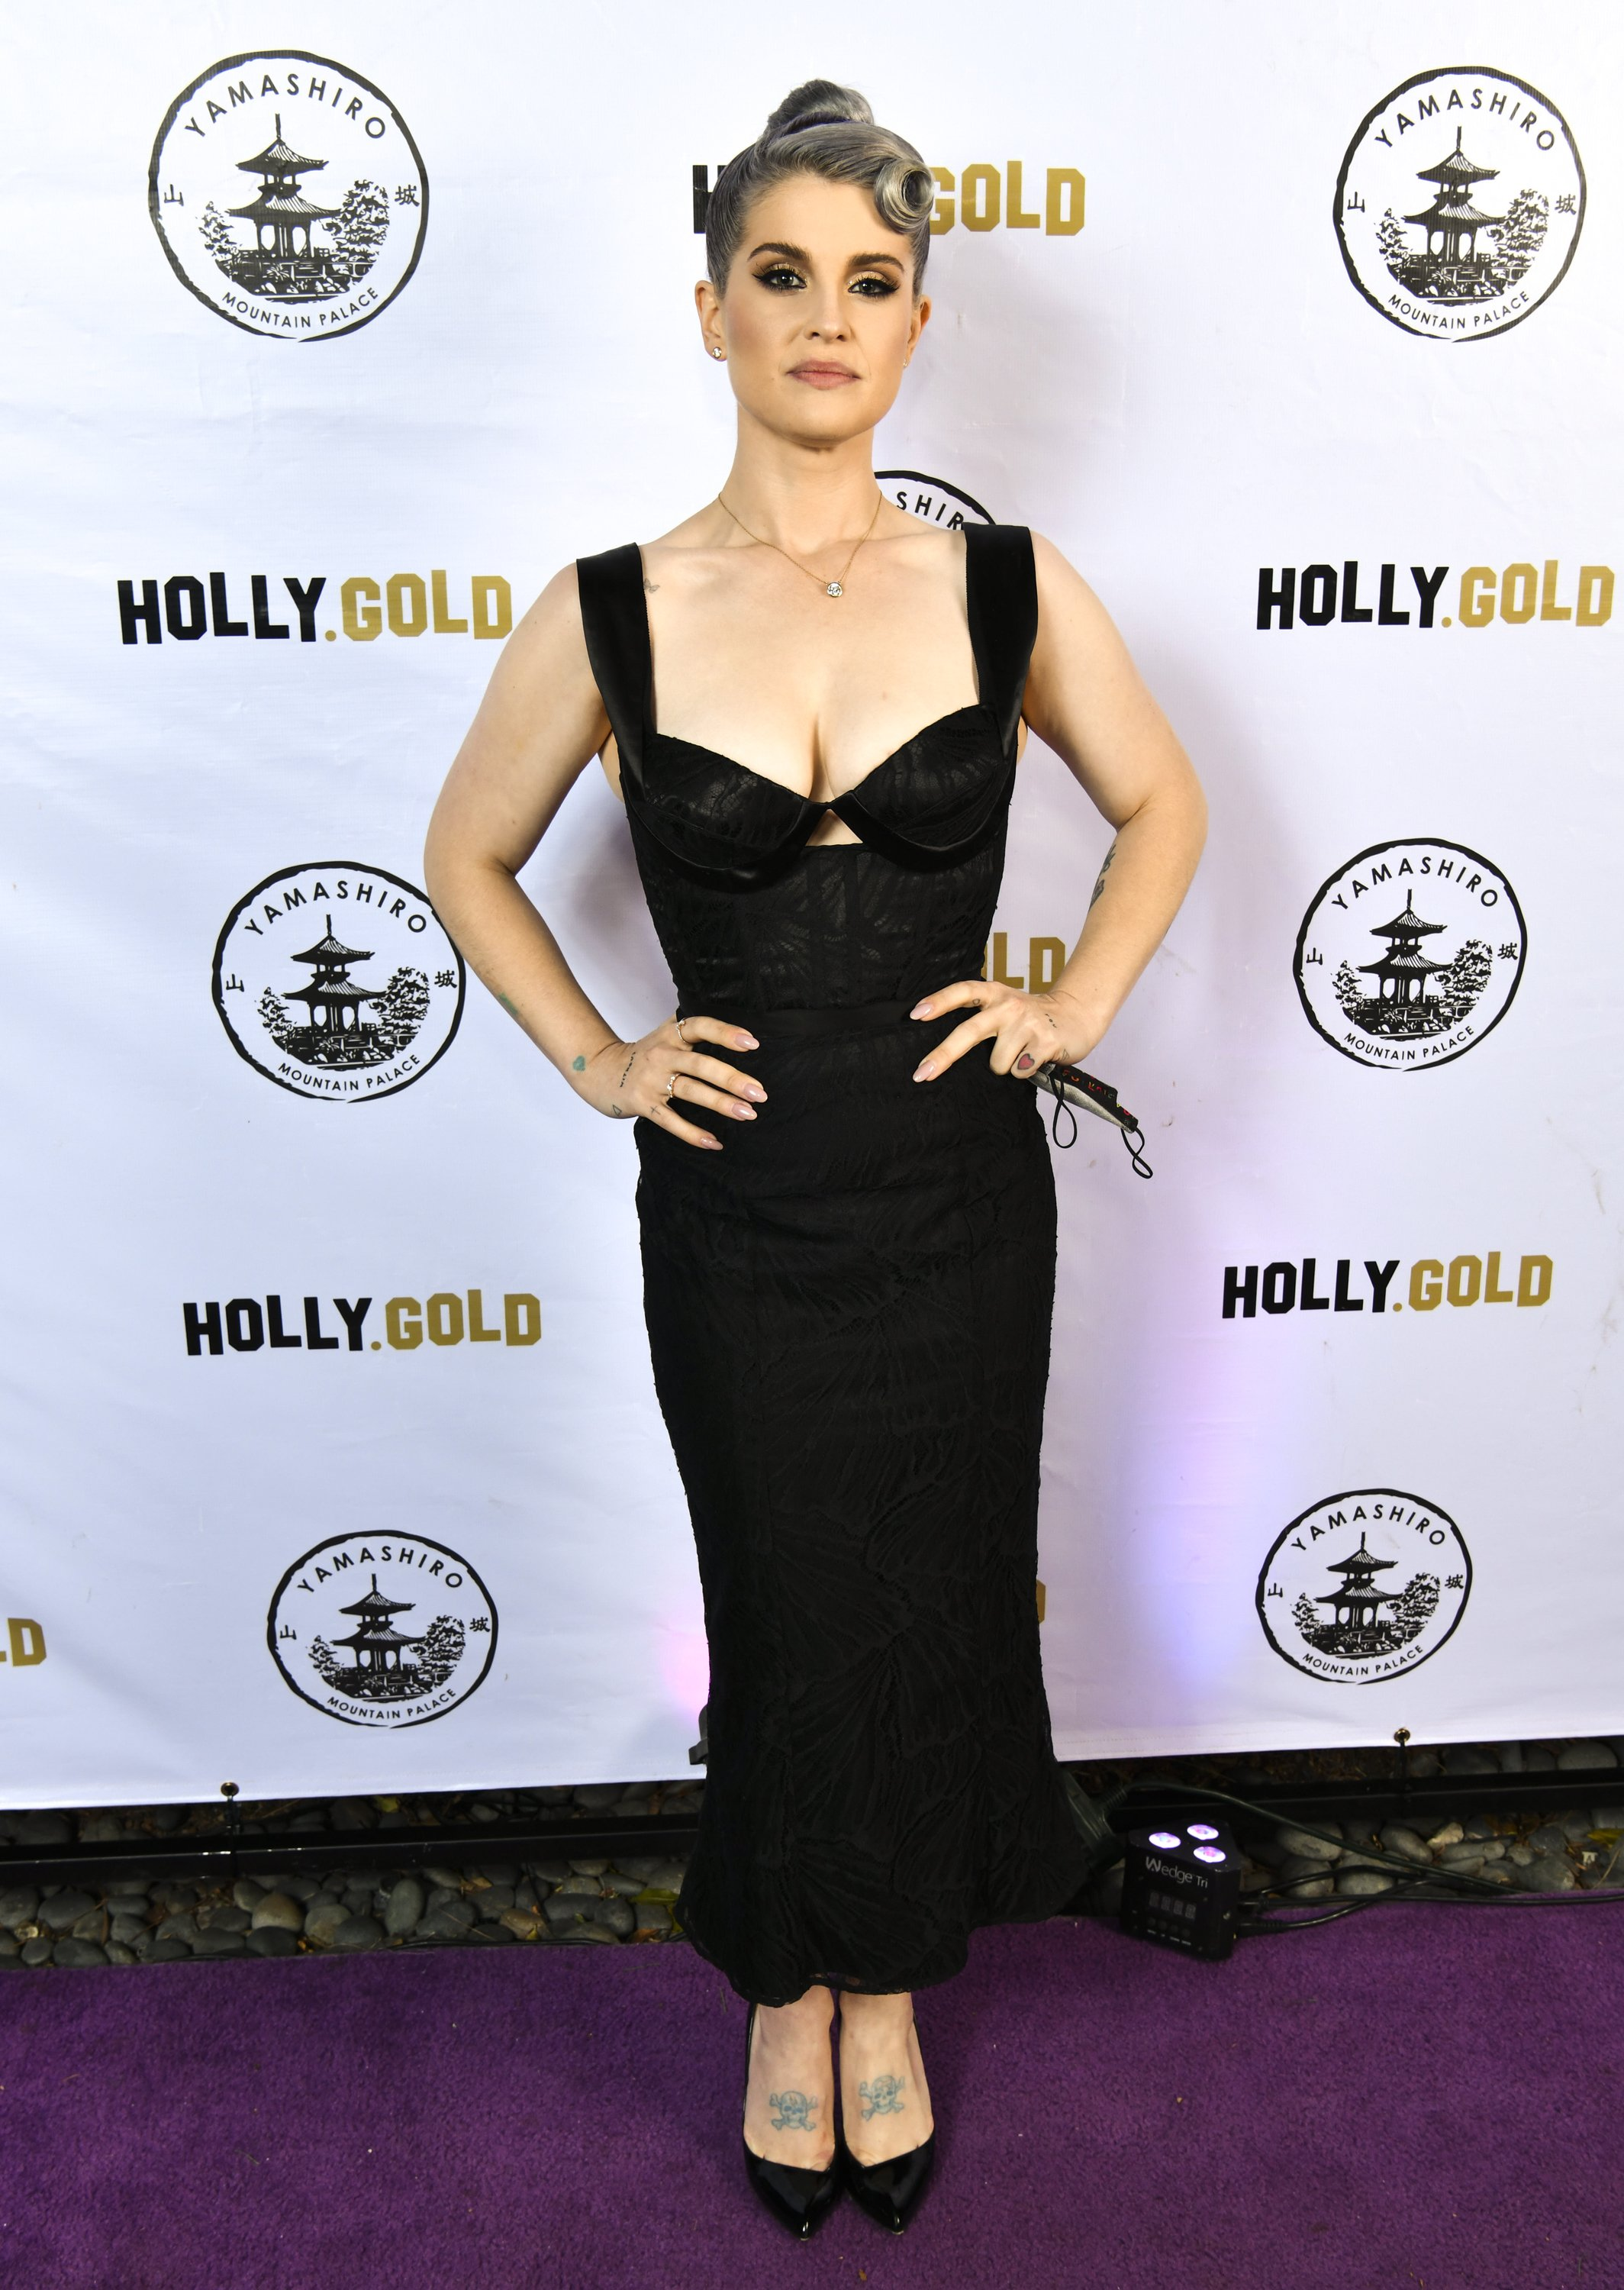 Kelly Osbourne attending her 36th Birthday sponsored by HollyGold Productions. Source | Photo: Getty Images